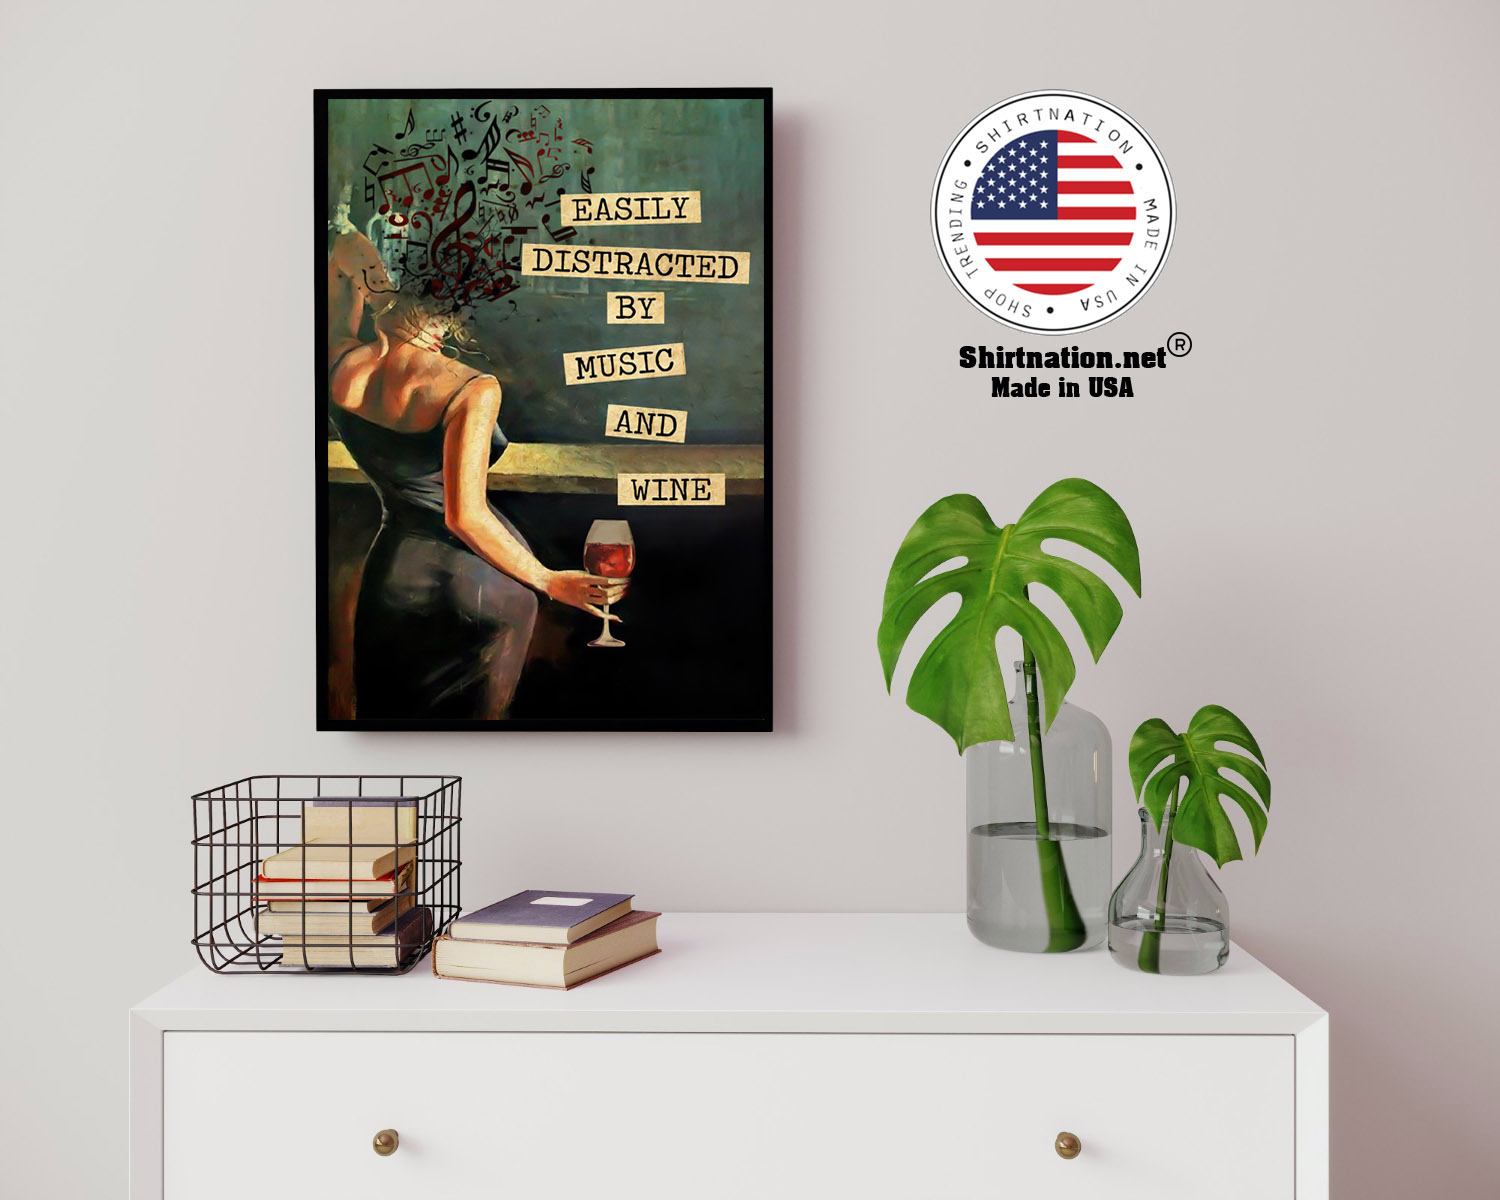 Vintage easily distracted by music and wine poster 14 2